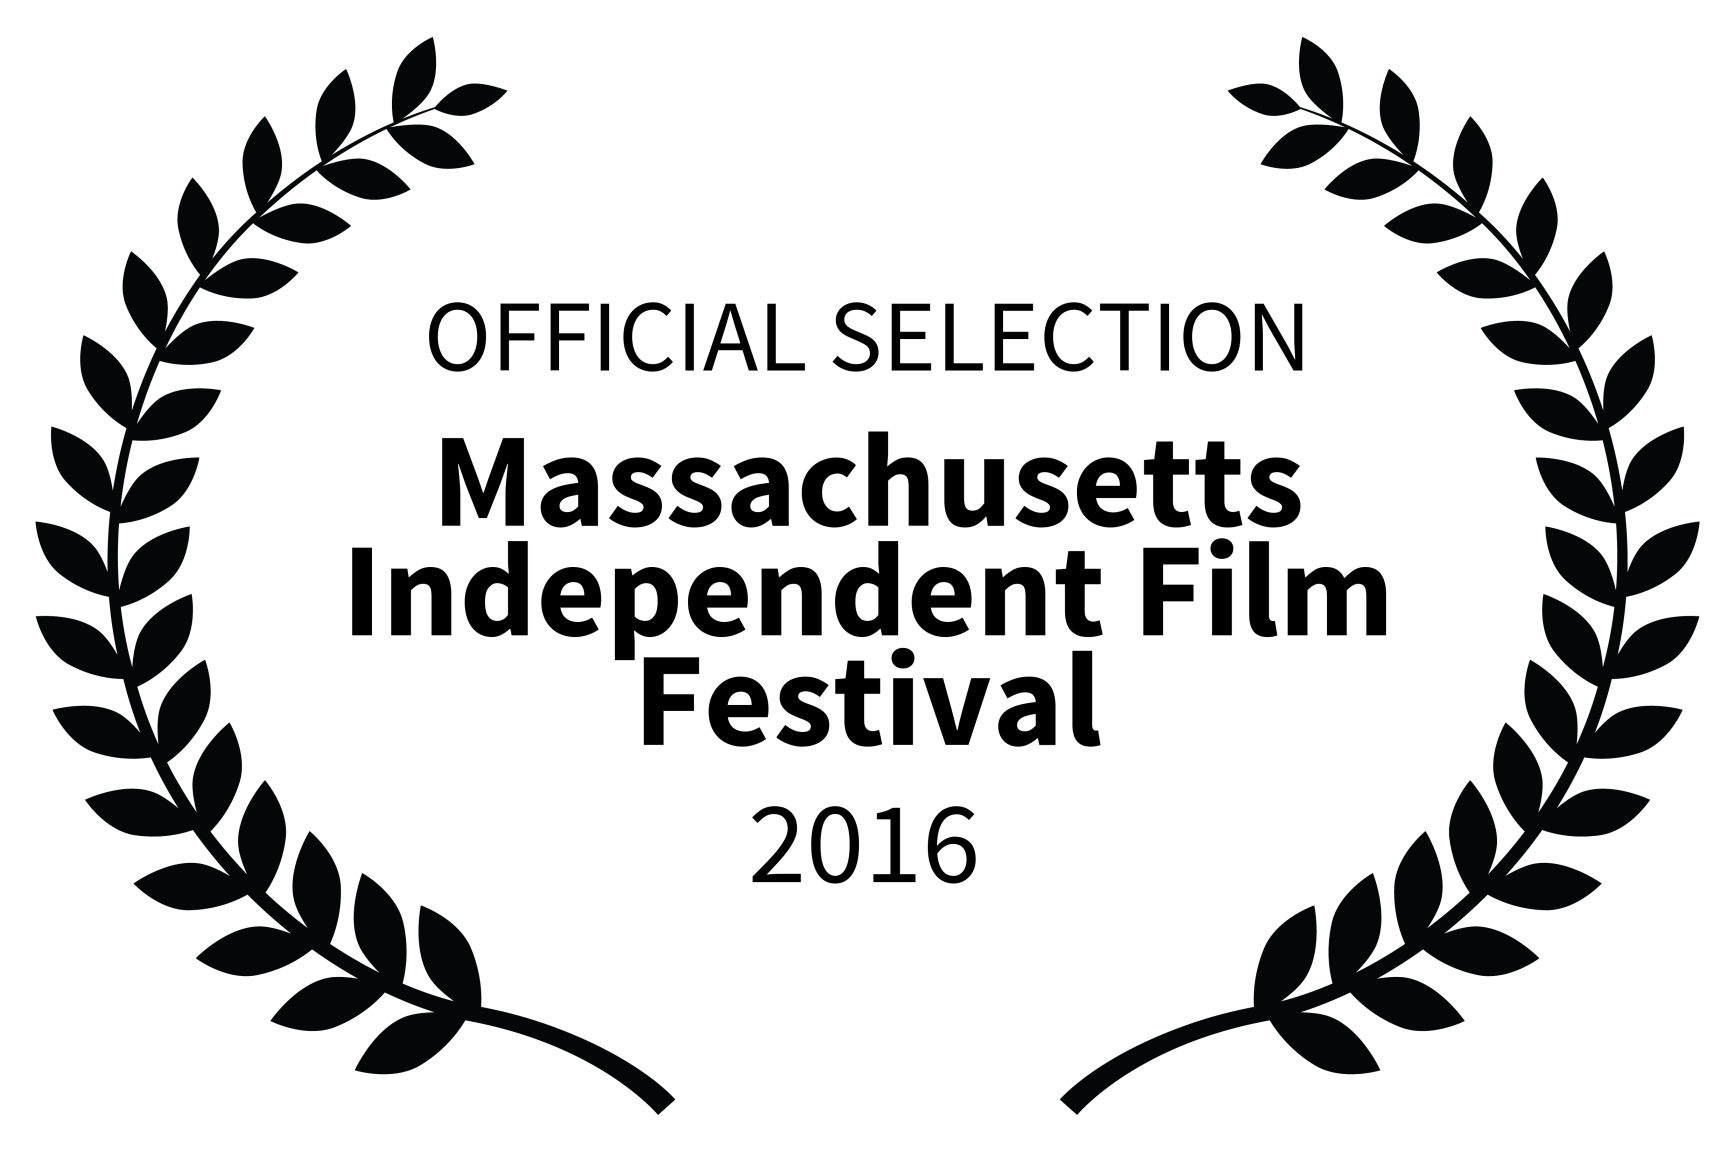 OFFICIAL SELECTION - Massachusetts Independent Film Festival - 2016 - Reflections - Lori Howll